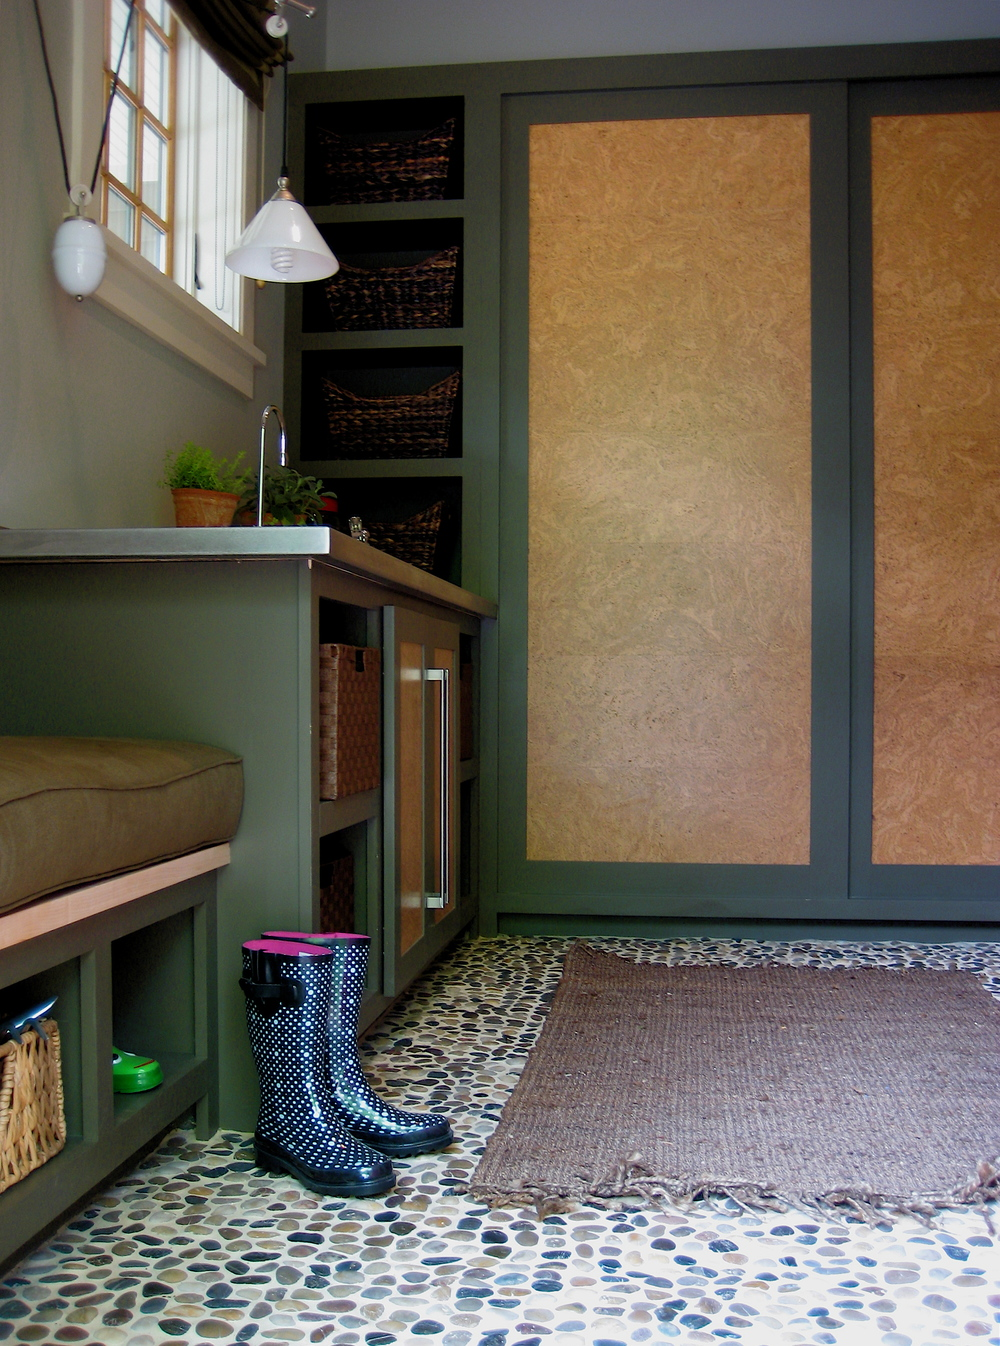 Pantry/Mudroom at Southern Living Idea Home Davidson Gap. Painted poplar cabinets with cork inlays in the doors for notes, and a river stone   floor.